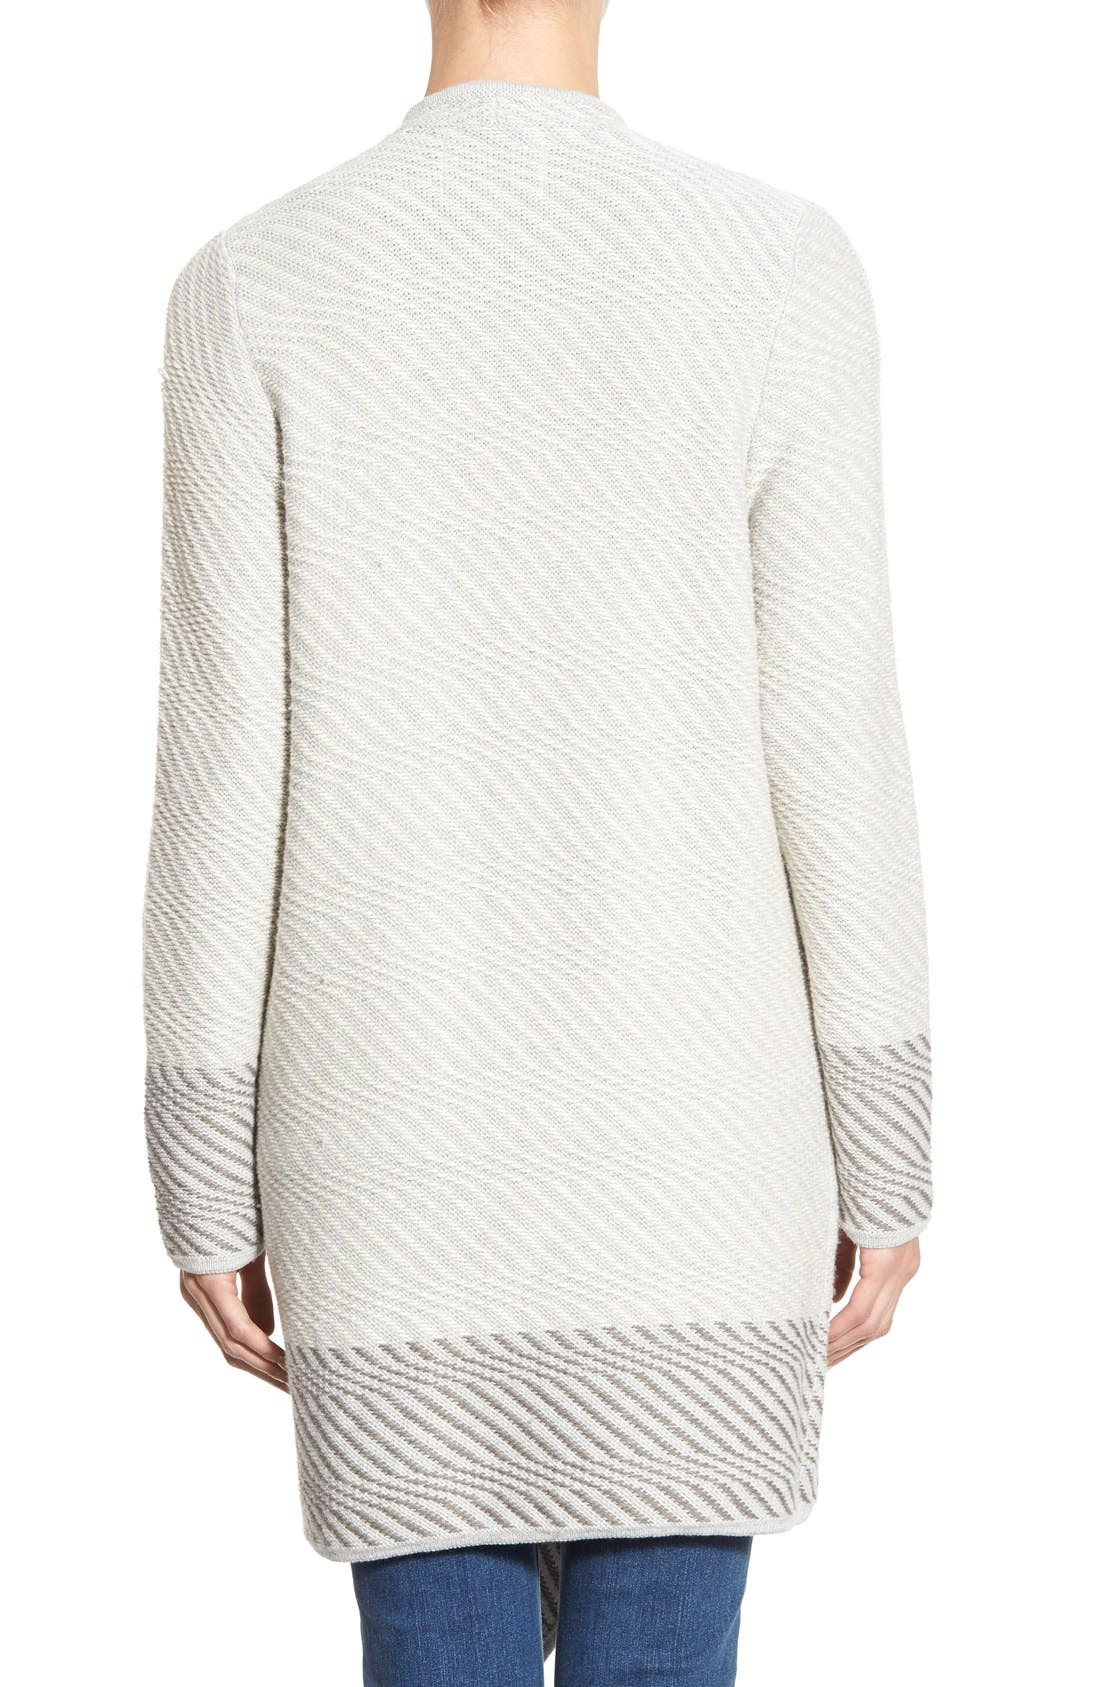 LUCKY BRAND, Waterfall Cardigan, Alternate thumbnail 3, color, 100